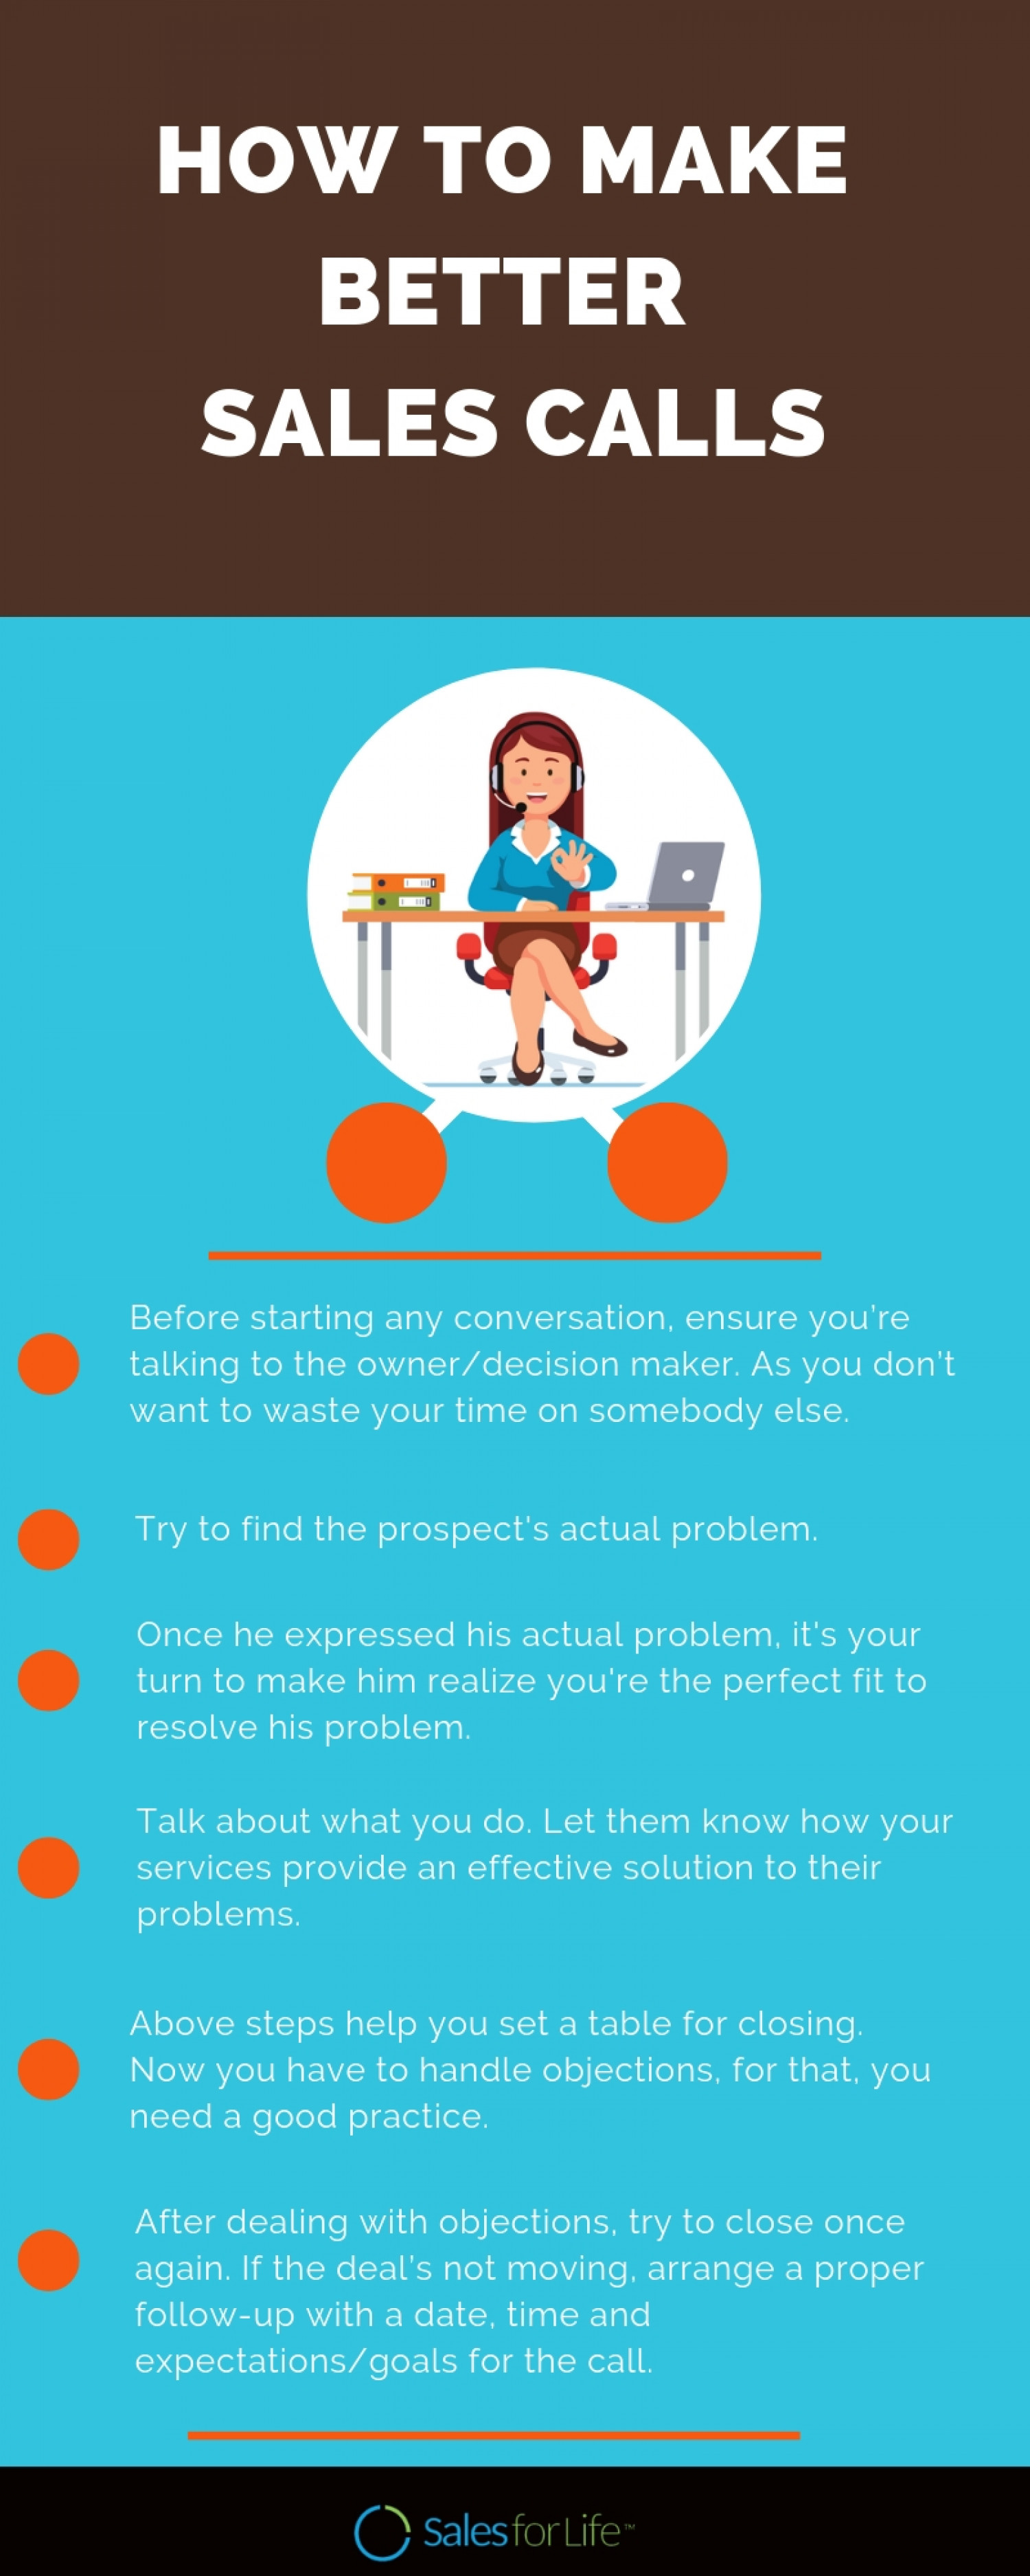 How To Make Better Sales Calls? Infographic